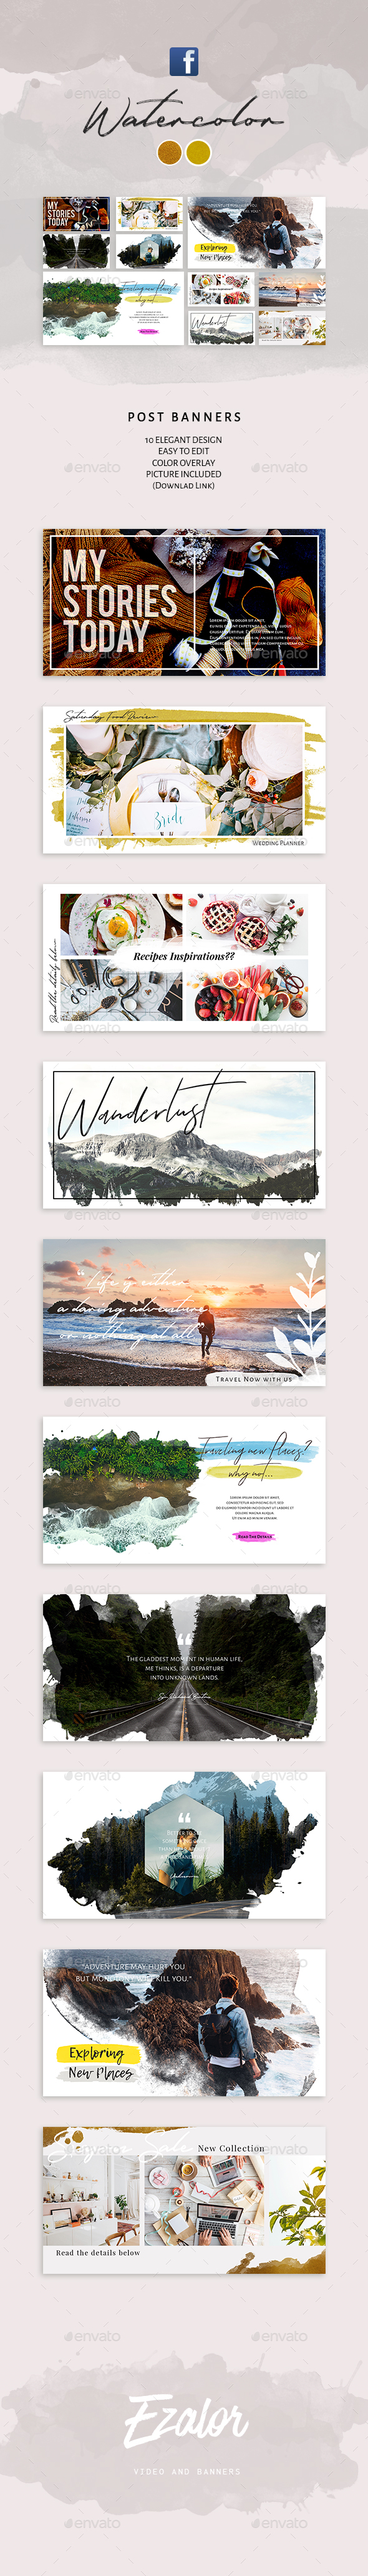 Watercolor Facebook Post Banners - Social Media Web Elements